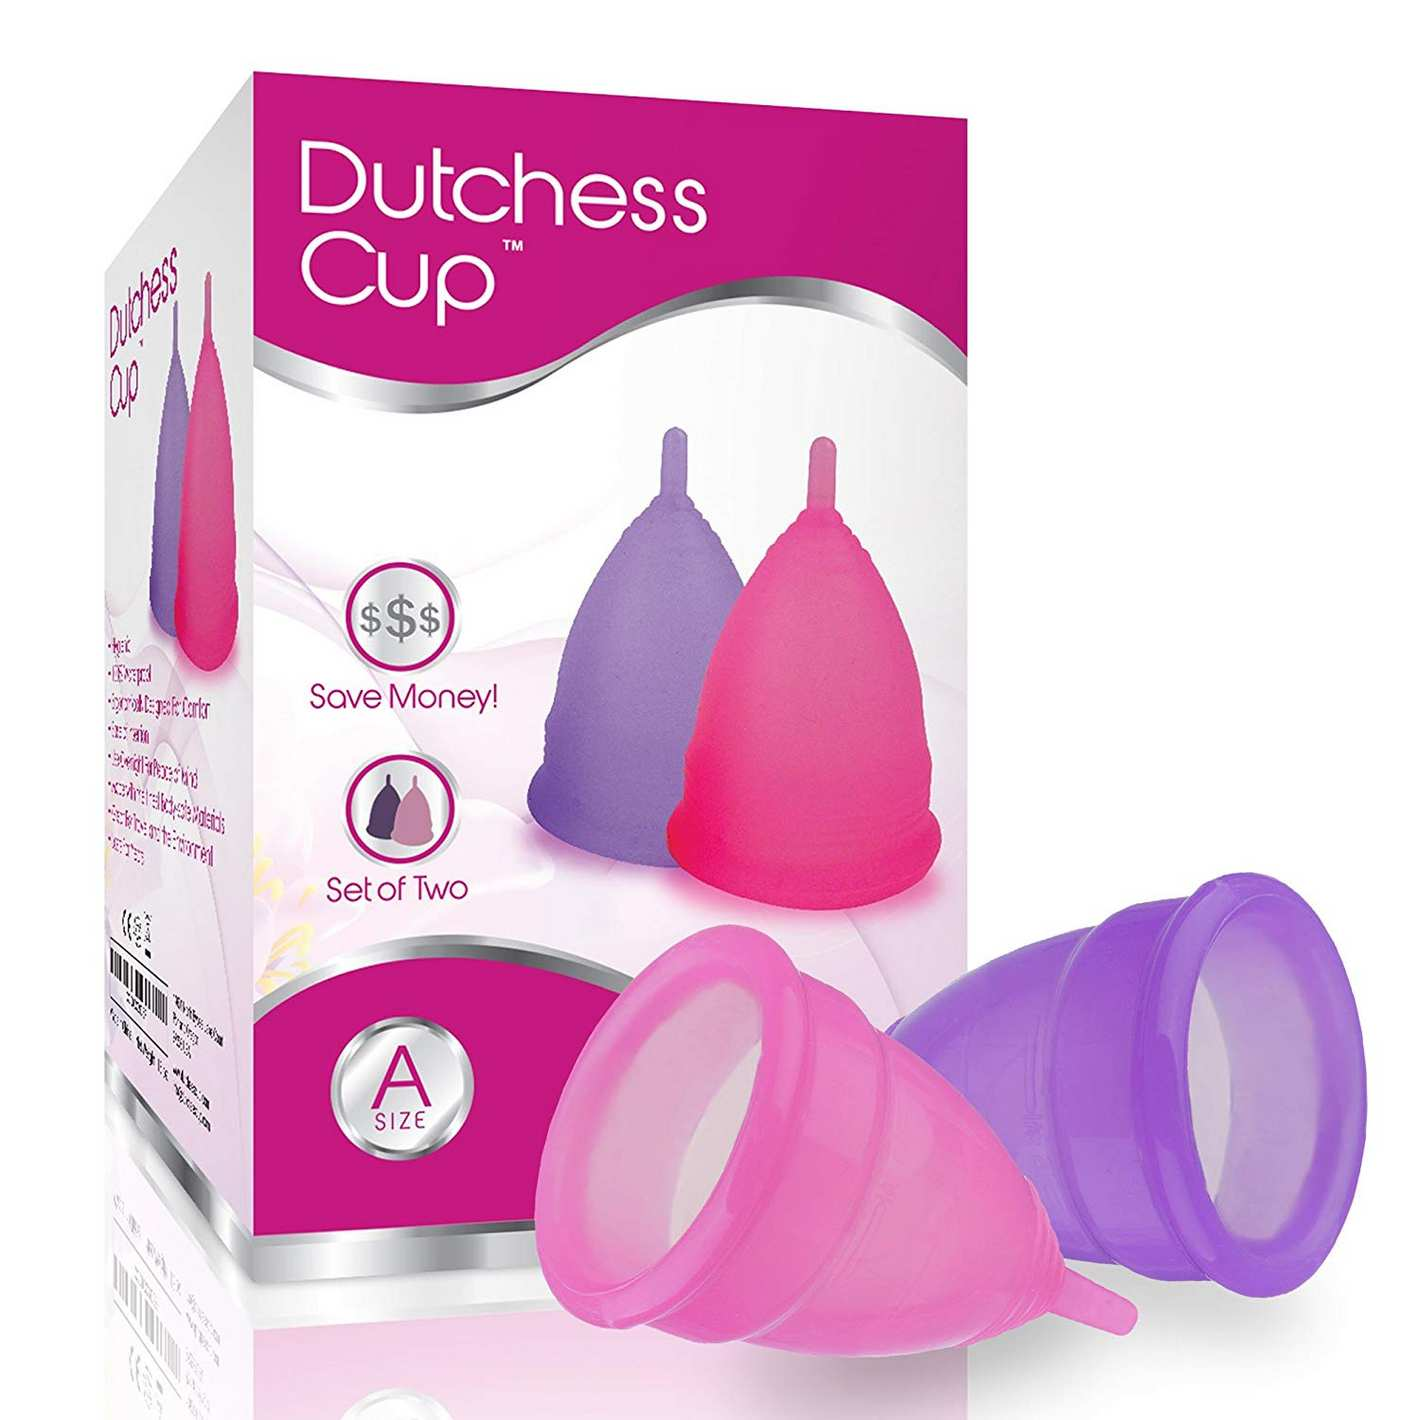 Dutchess Menstrual Authentic Original Cups Set of 2 with Free Bags